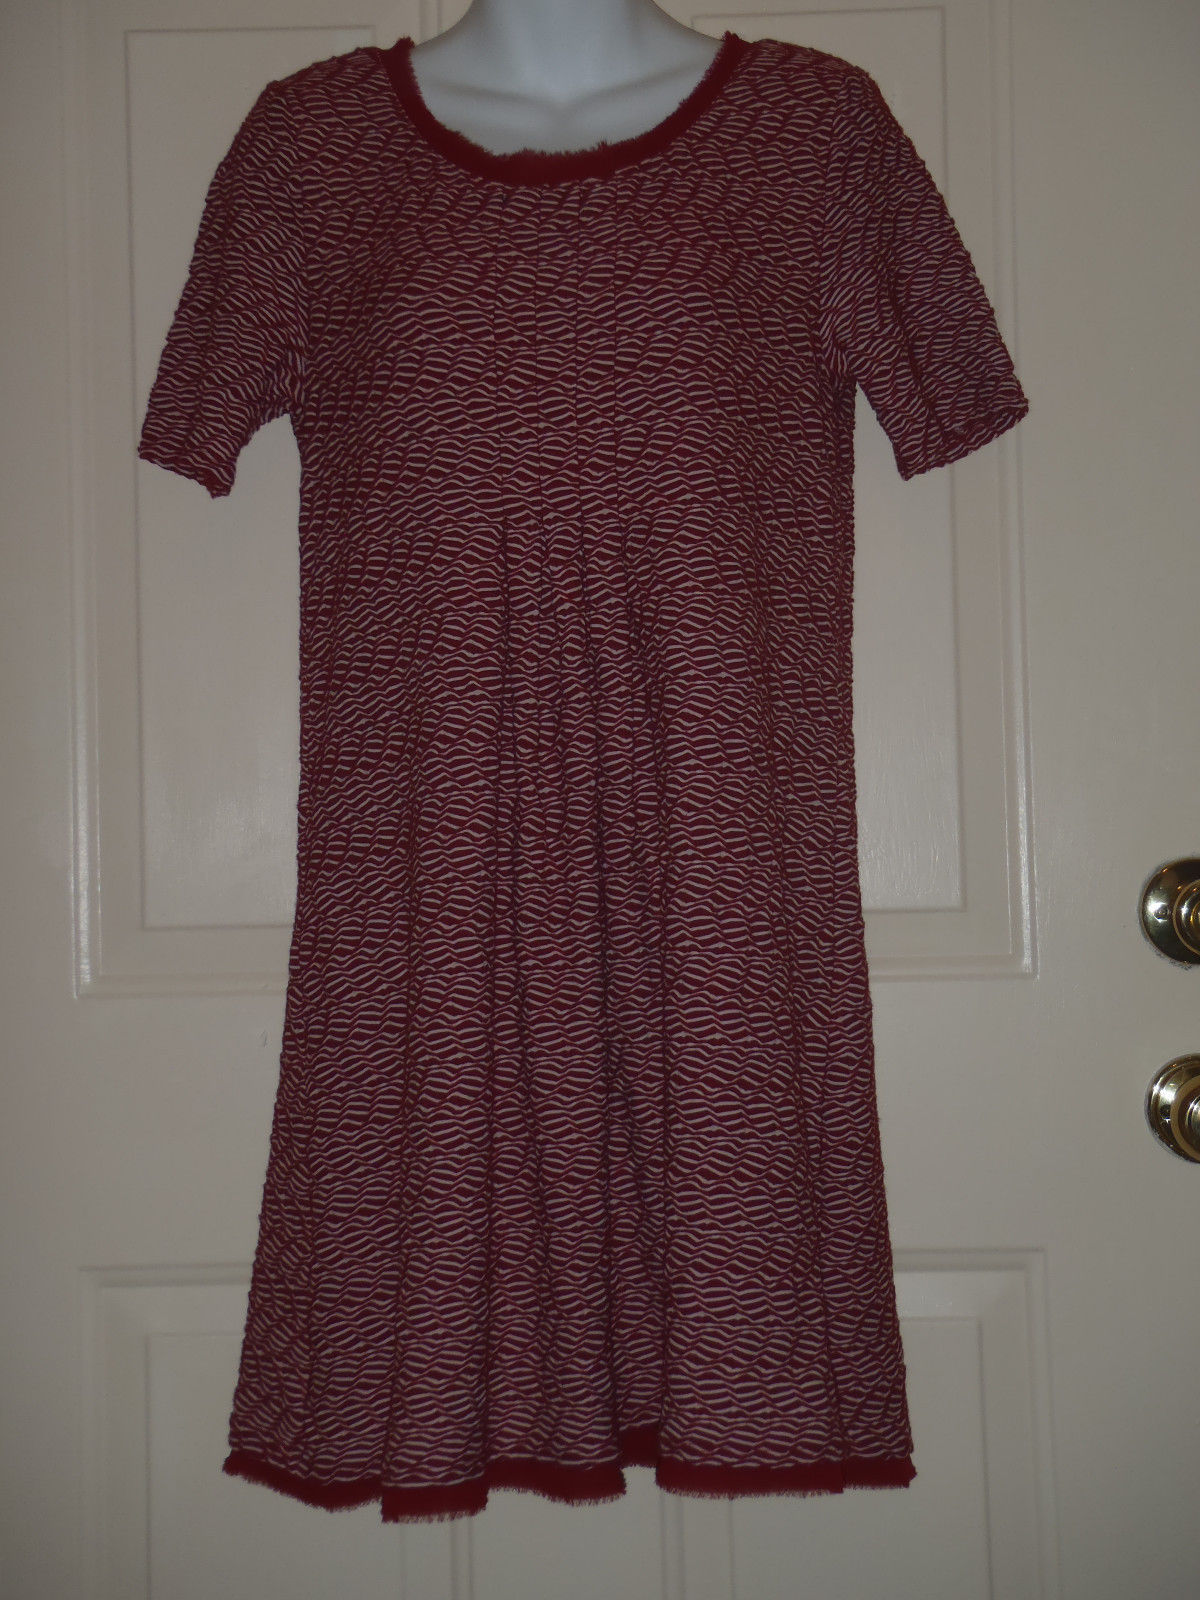 Maeve Anthropologie Maroon White Squiggles Pleated Knit Dress Raw Edges MEDIUM M